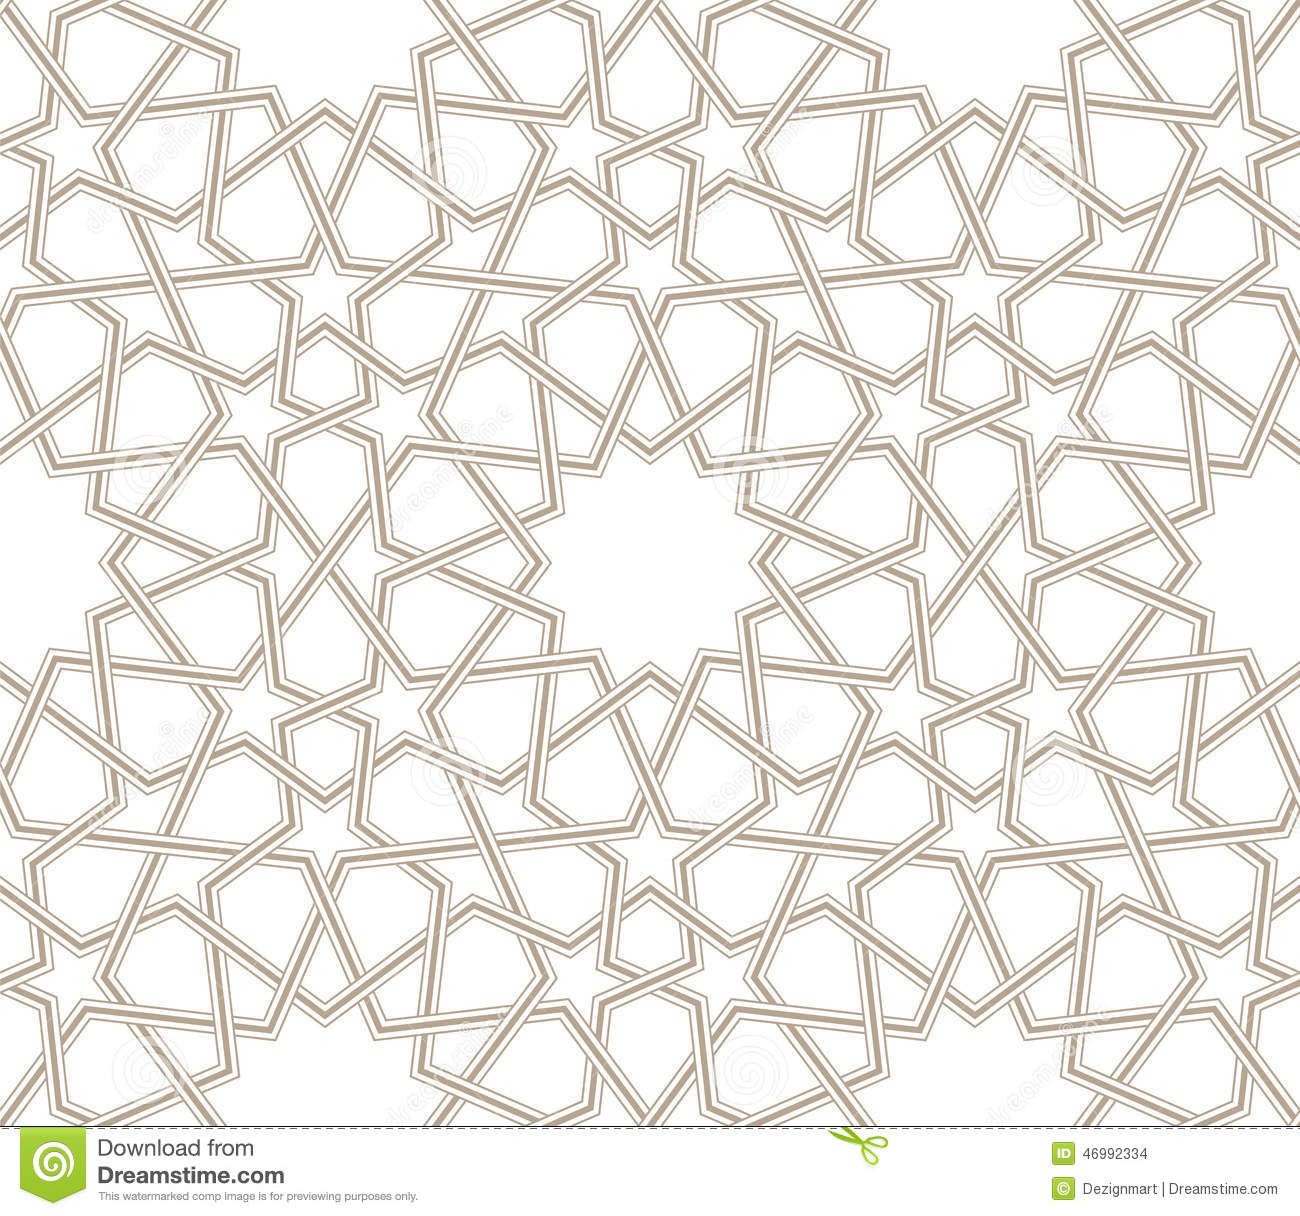 united states map wall art with Stock Illustration Geometric Star Pattern Grey Lines White Background Islamic Vector Image46992334 on Stock Illustration Mock Up Blank Poster Wall Living Room Background Template Design Image47003135 moreover Stock Illustration Geometric Star Pattern Grey Lines White Background Islamic Vector Image46992334 additionally Blue Grunge Watercolour Paint Wallpaper Mural together with Millennium Park In Chicago furthermore Stock Photography Boy Karate Kick Vector Illustration Image36068082.